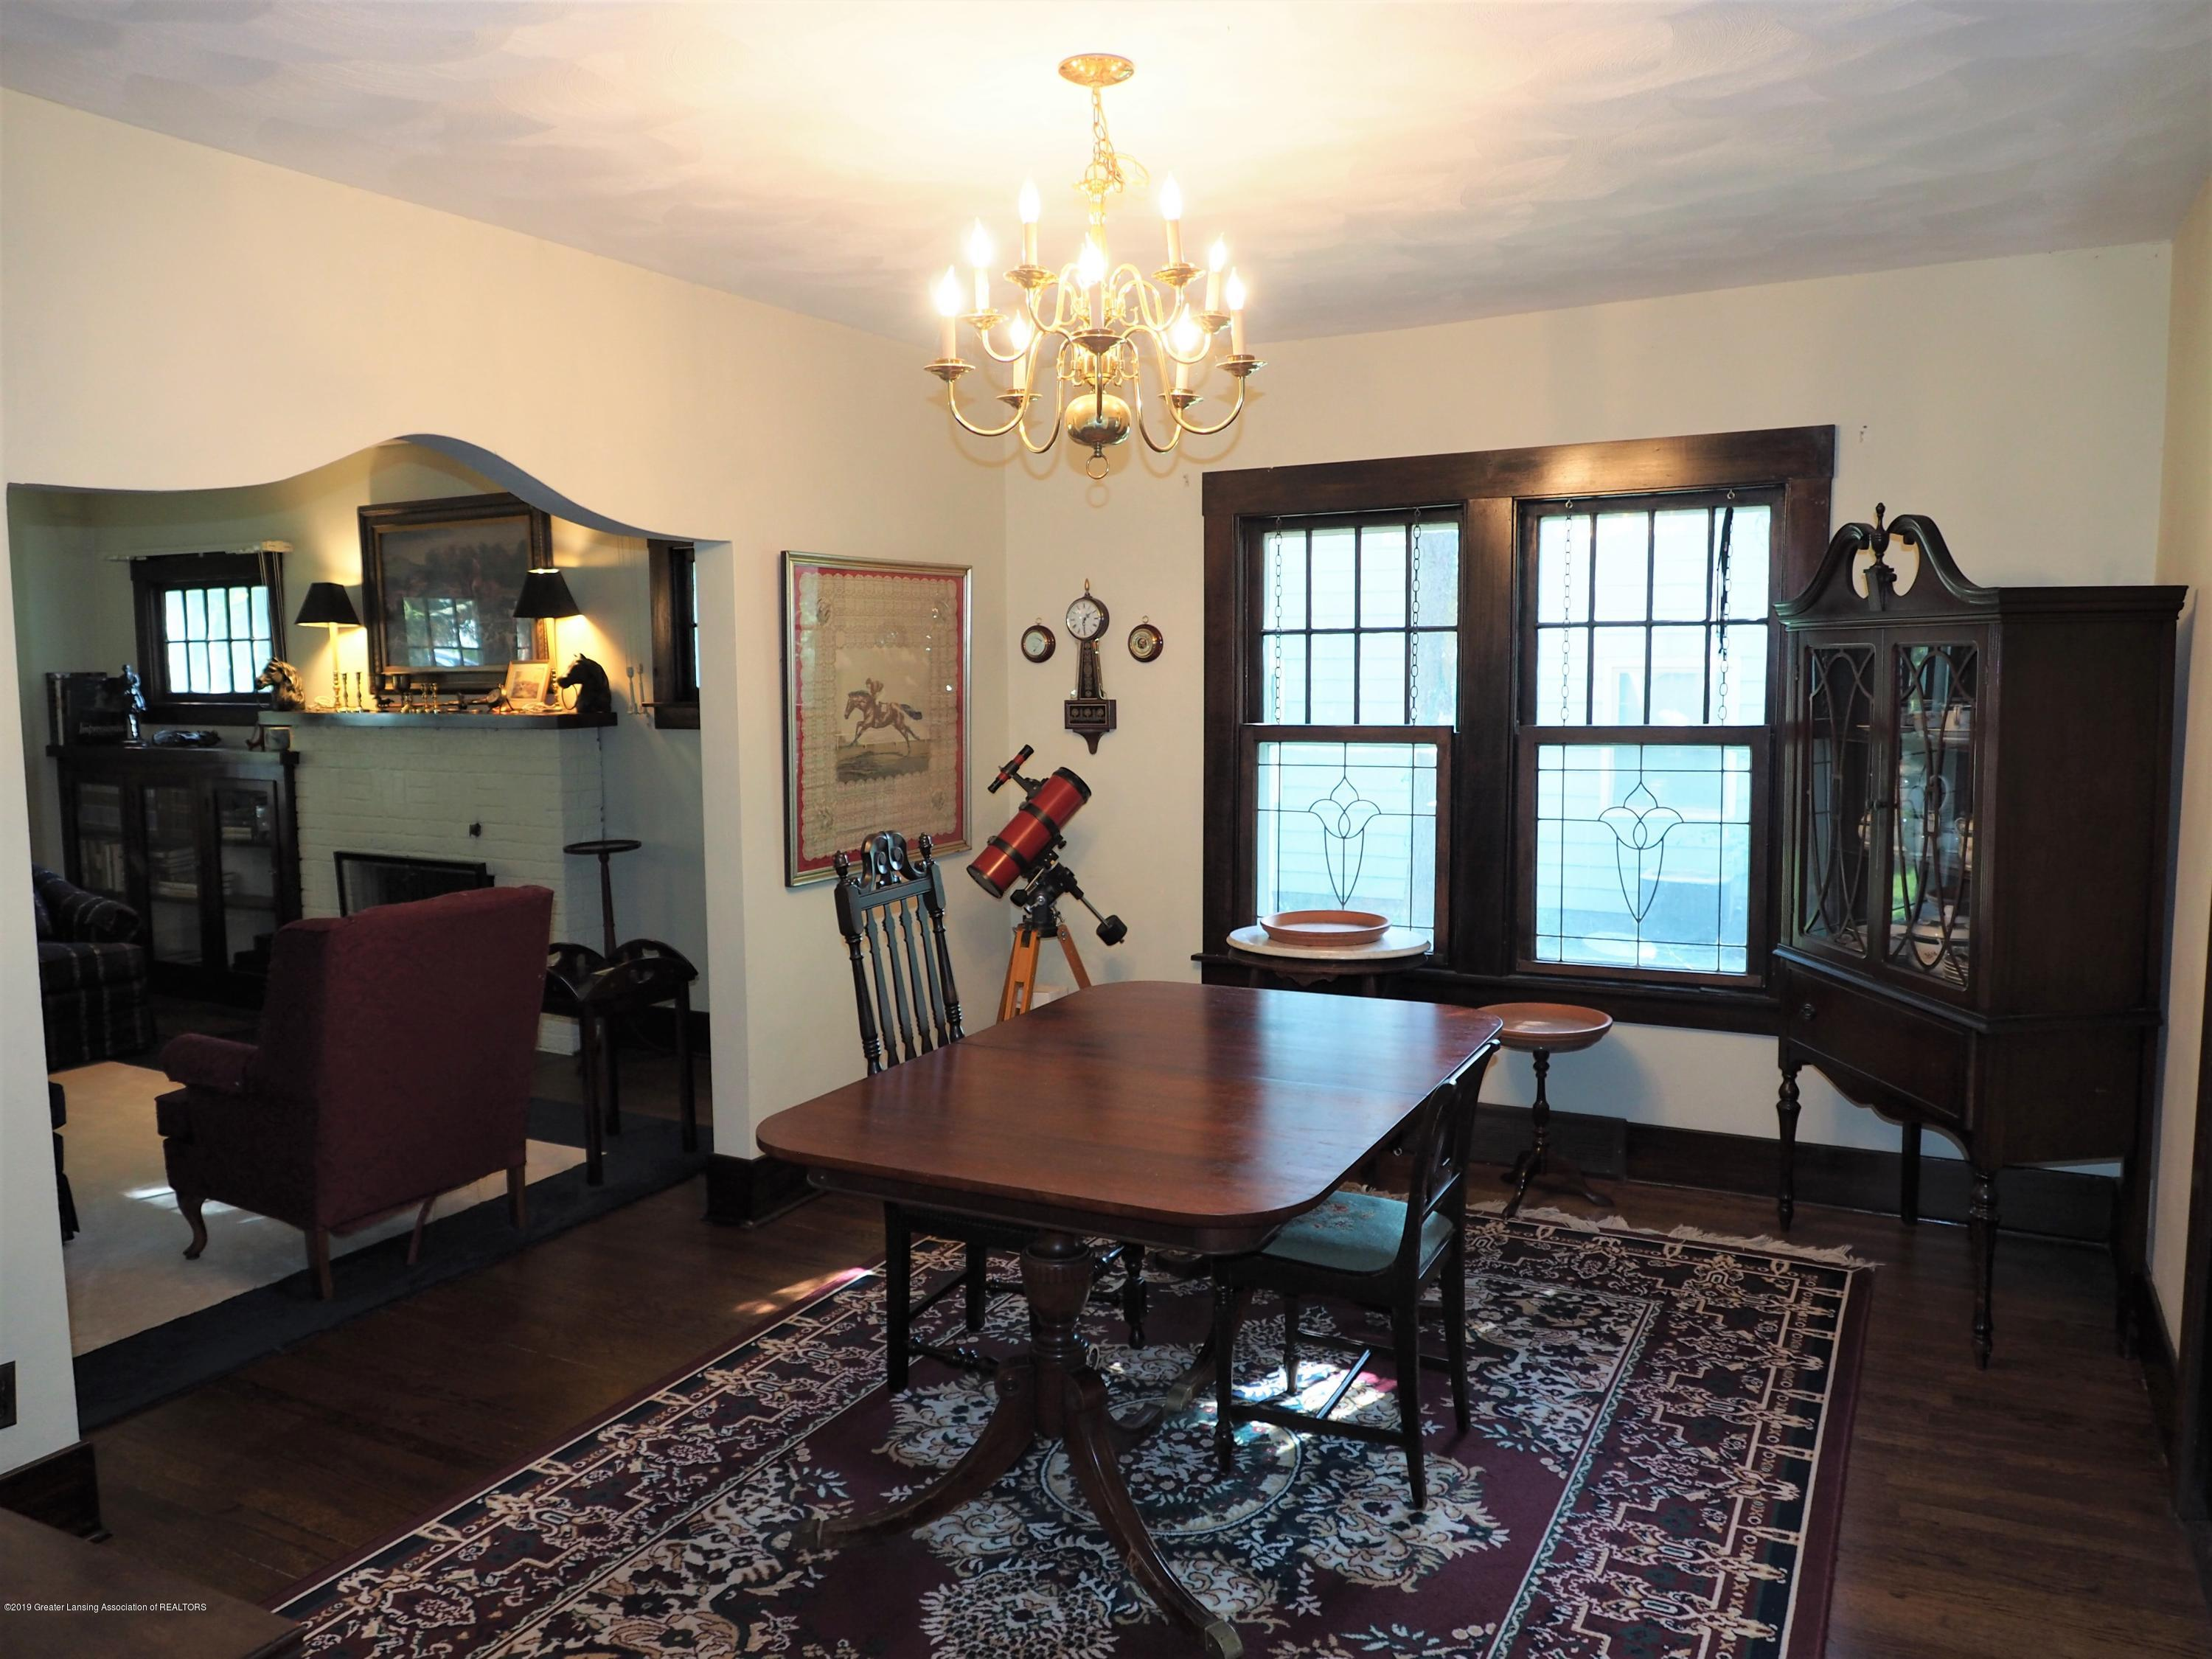 343 Cowley Ave - P1011421 - 9